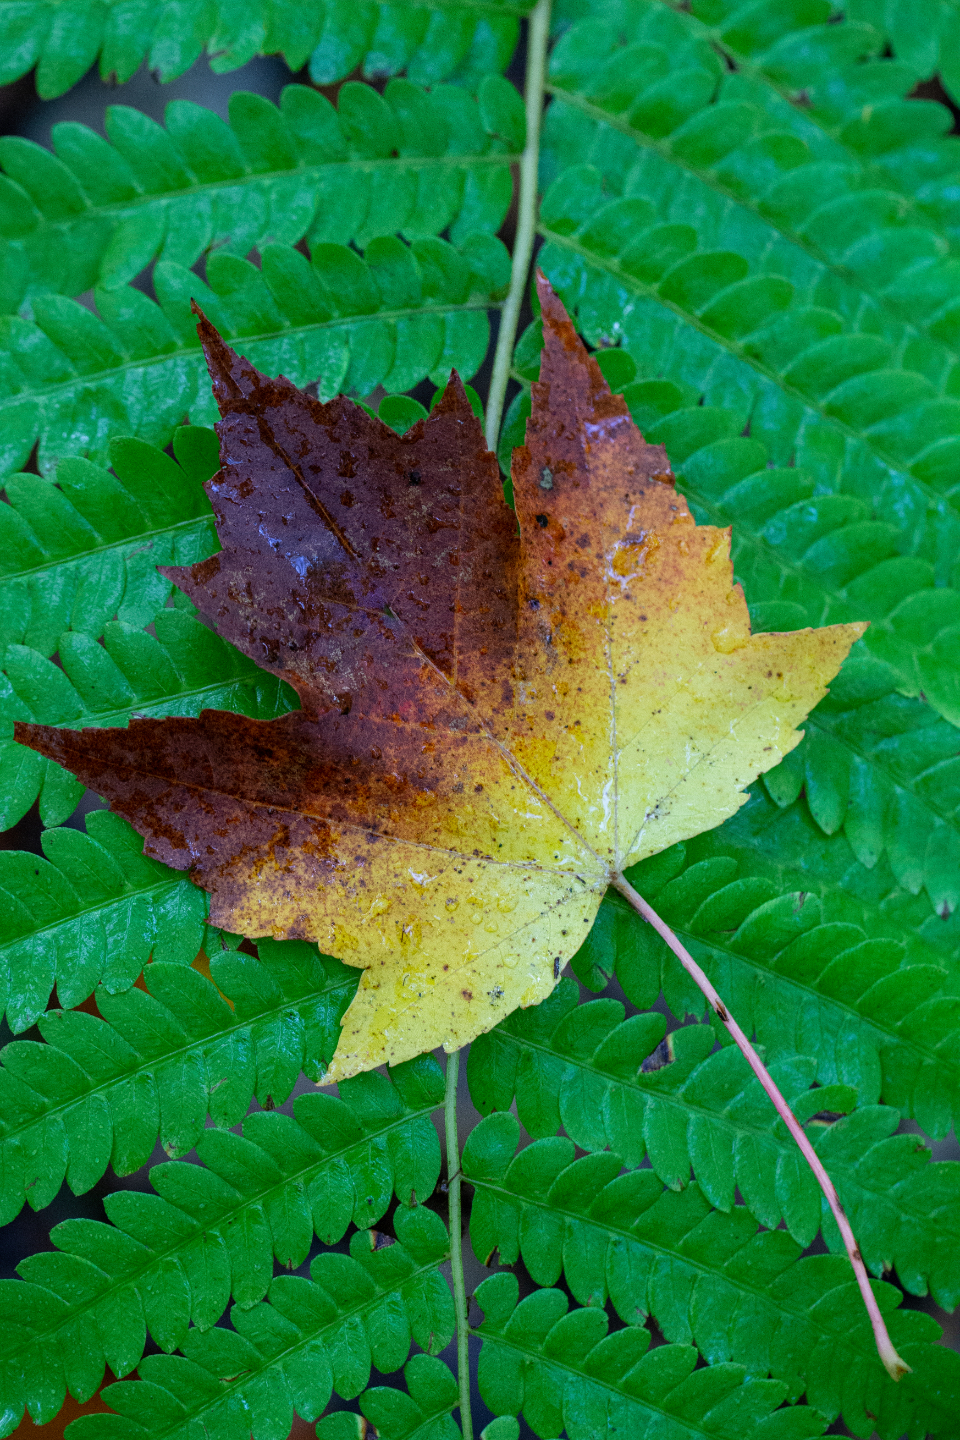 single leaf close up autumn fern nature maple fall fallen detail top natural plant outdoors foliage view